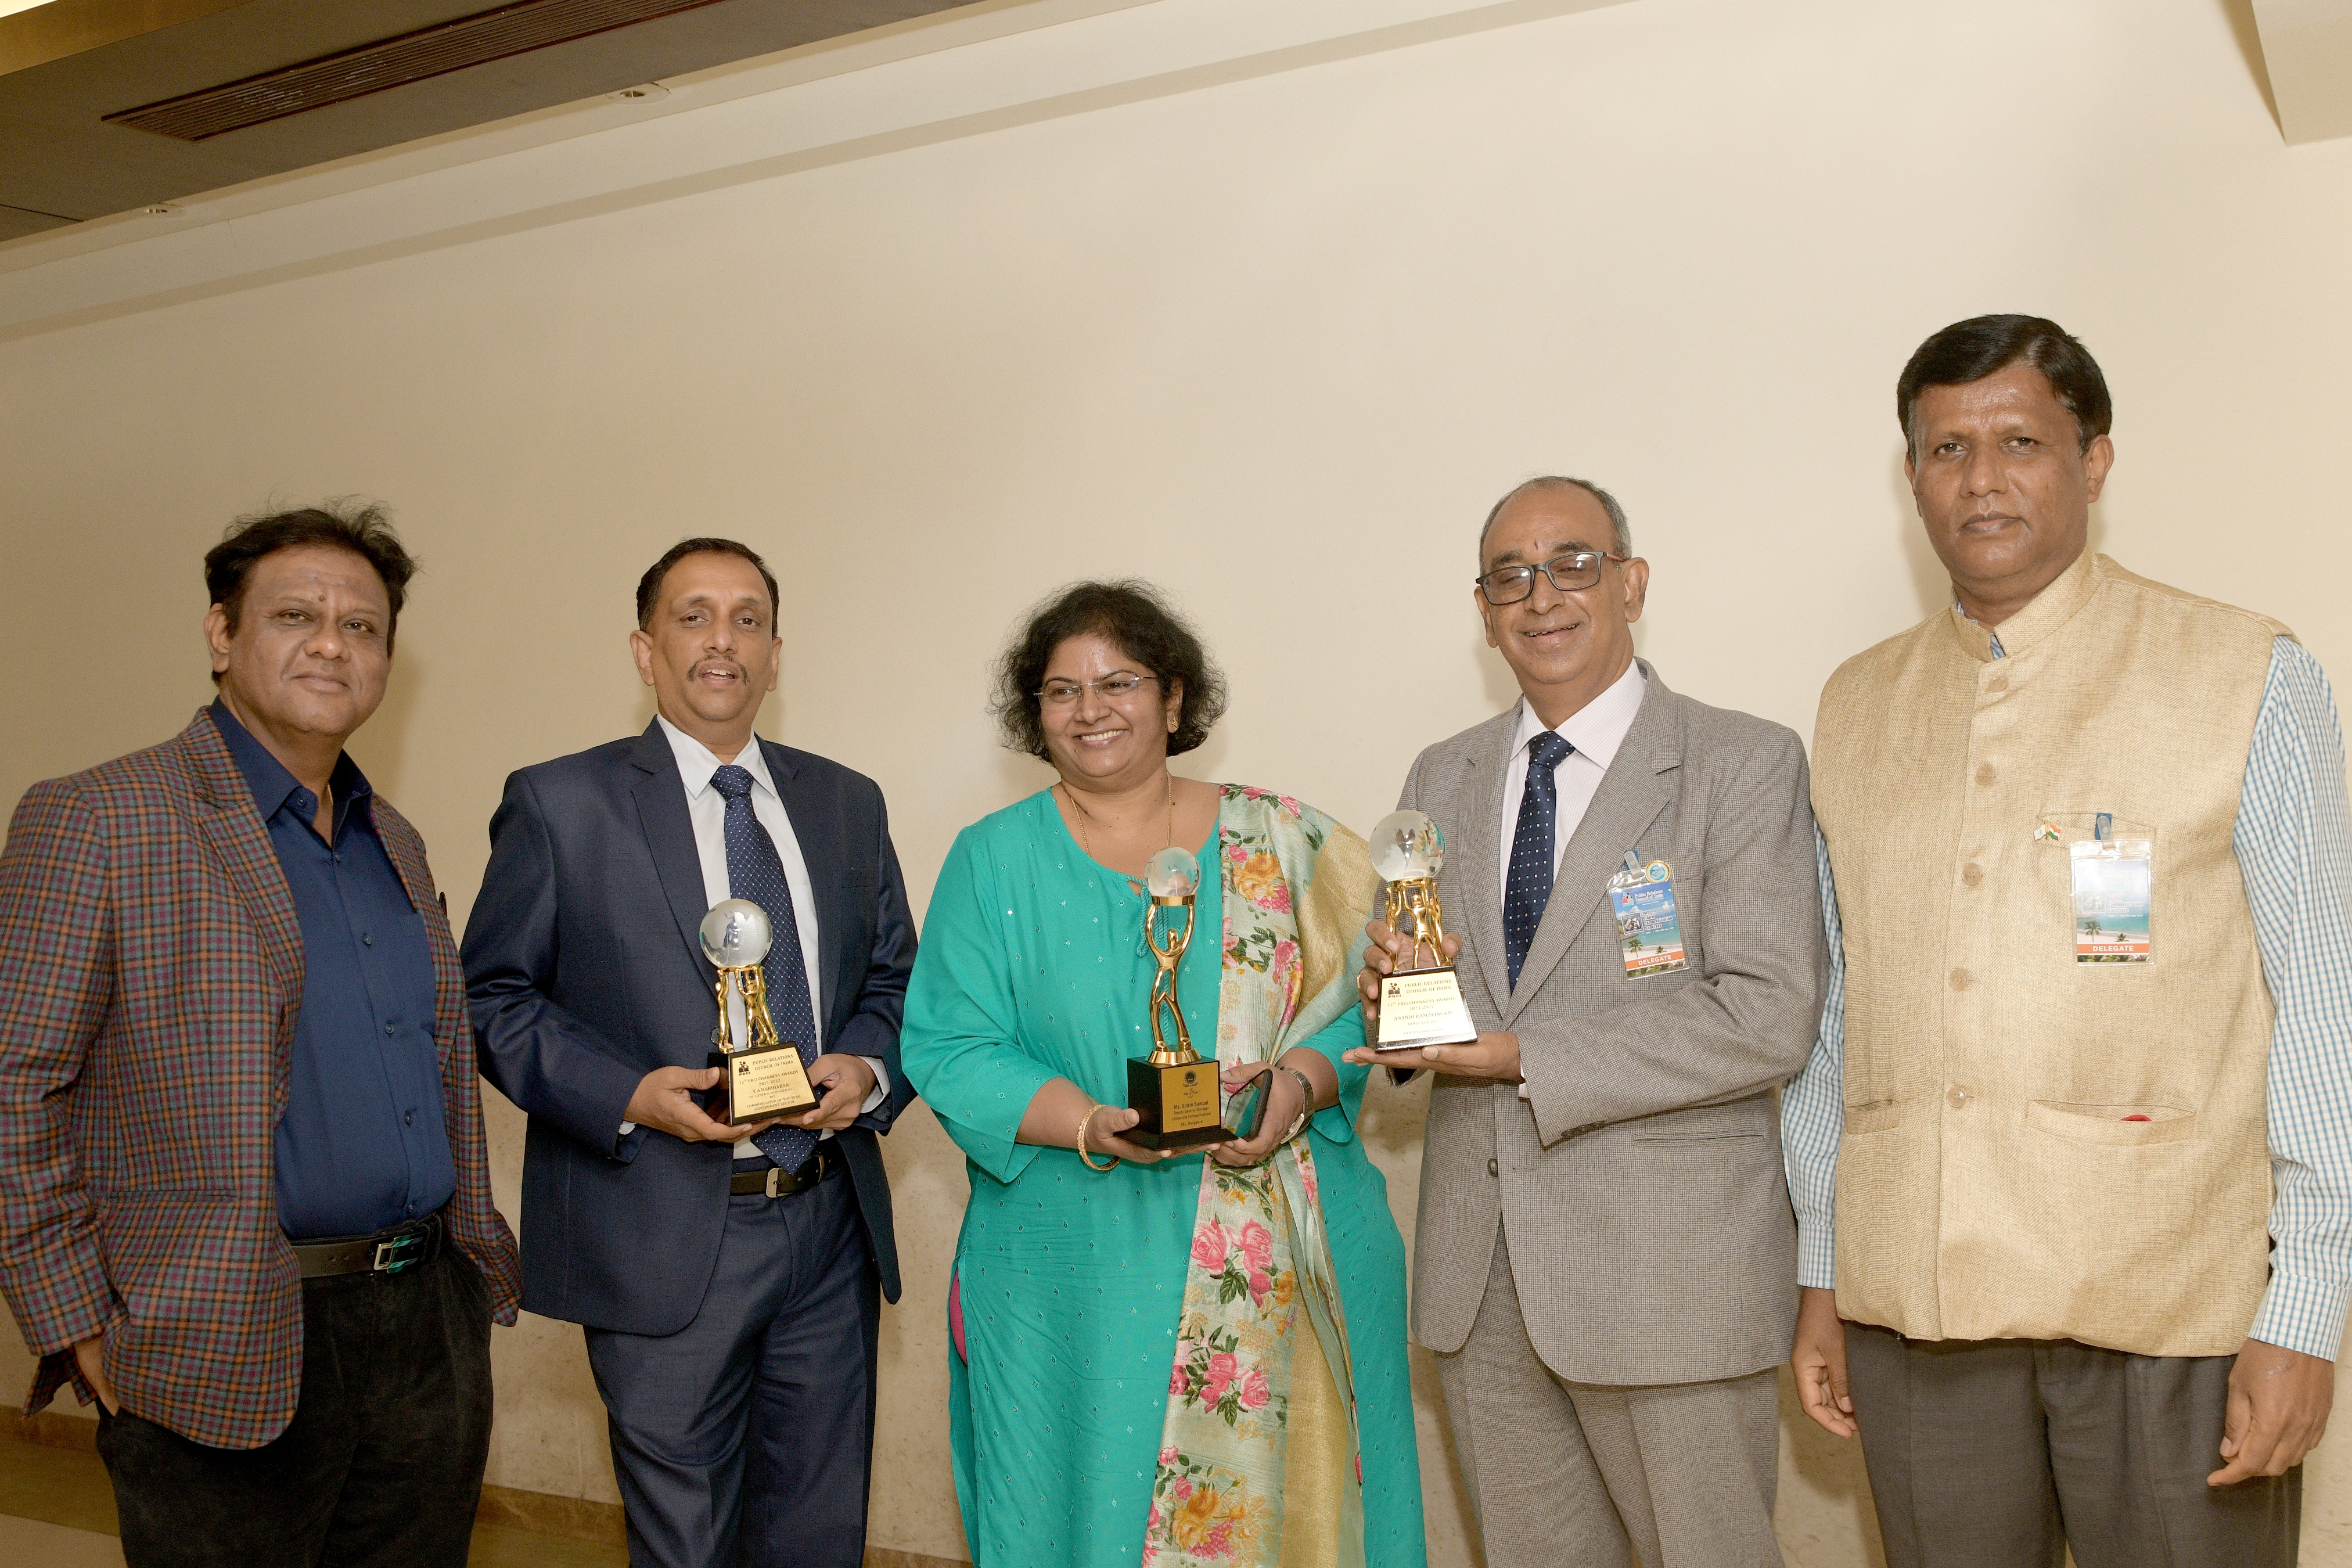 BEL_TEAM_WITH_PUBLIC_RELATIONS_COUNCIL_OF_INDIA_AWARDS.JPG